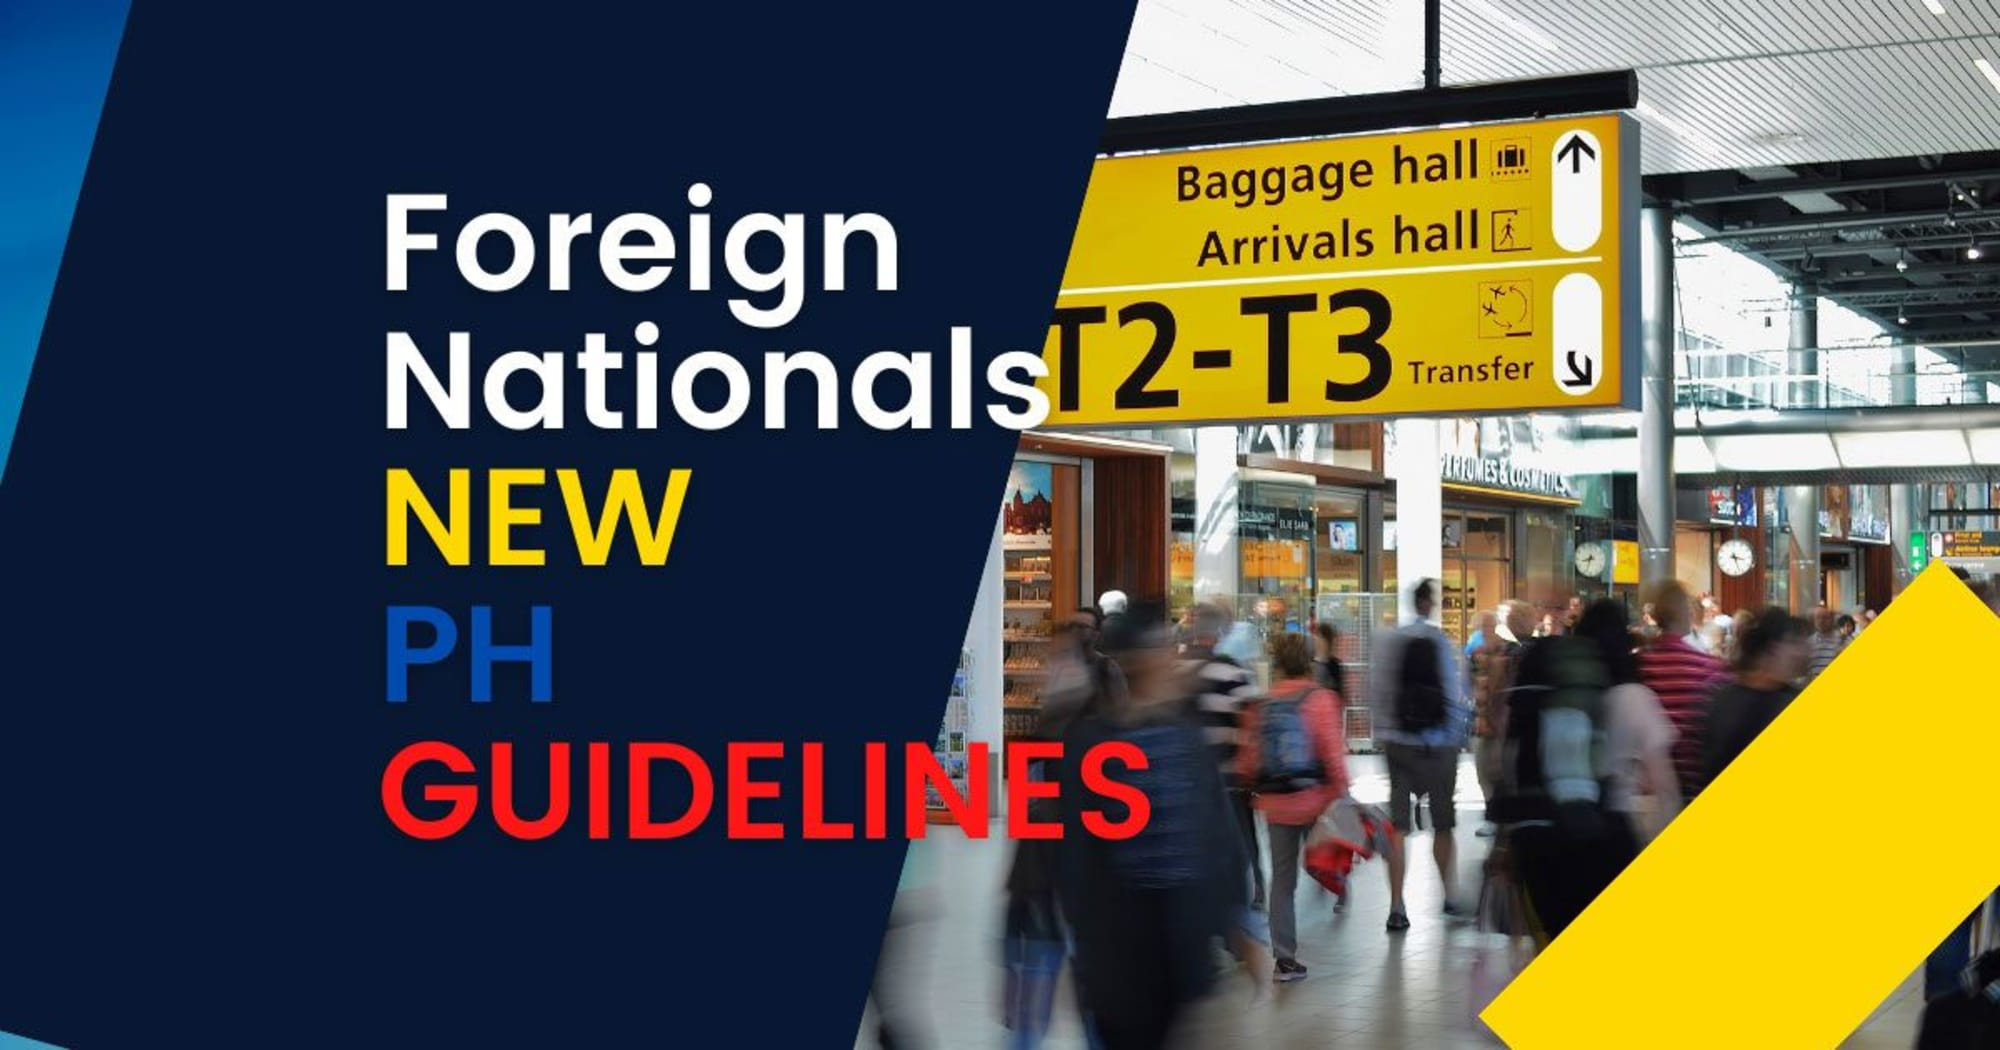 Qualifications of Foreign Nationals Arriving in PH